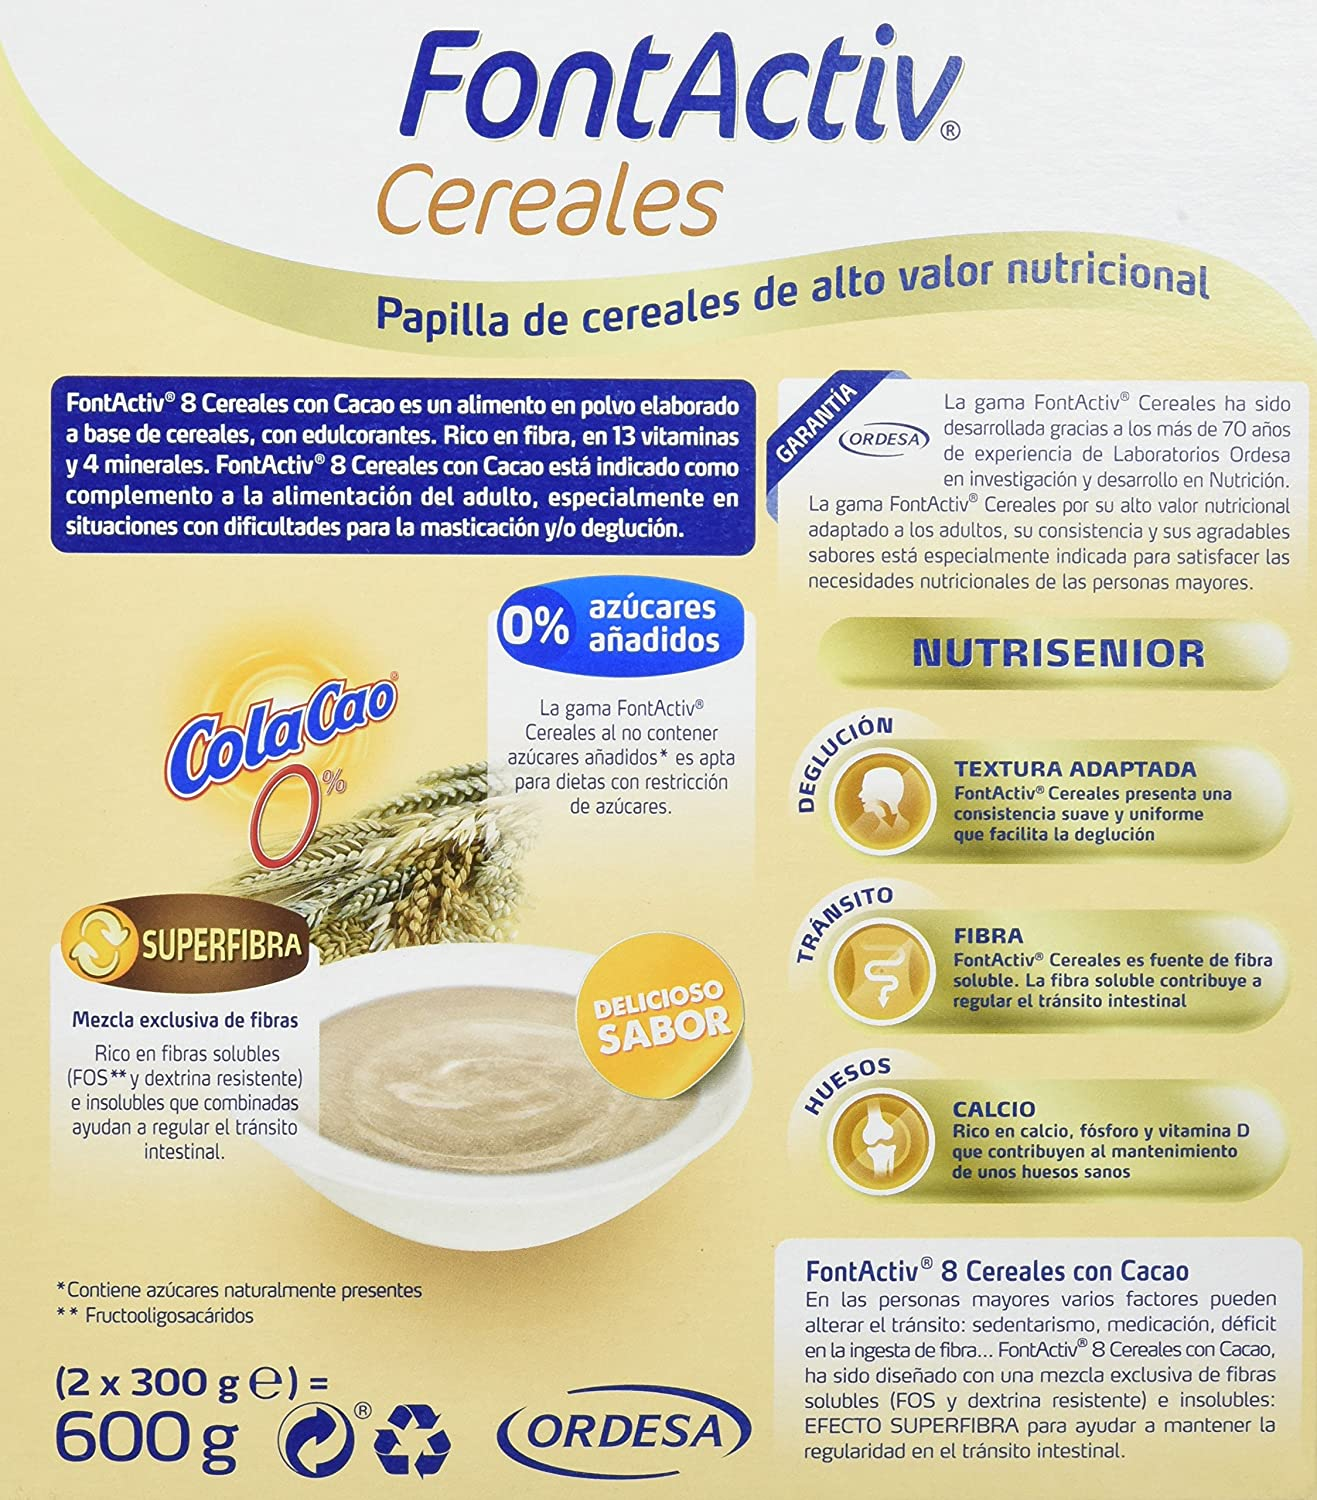 Vitaminas liposolubles funcion biologica